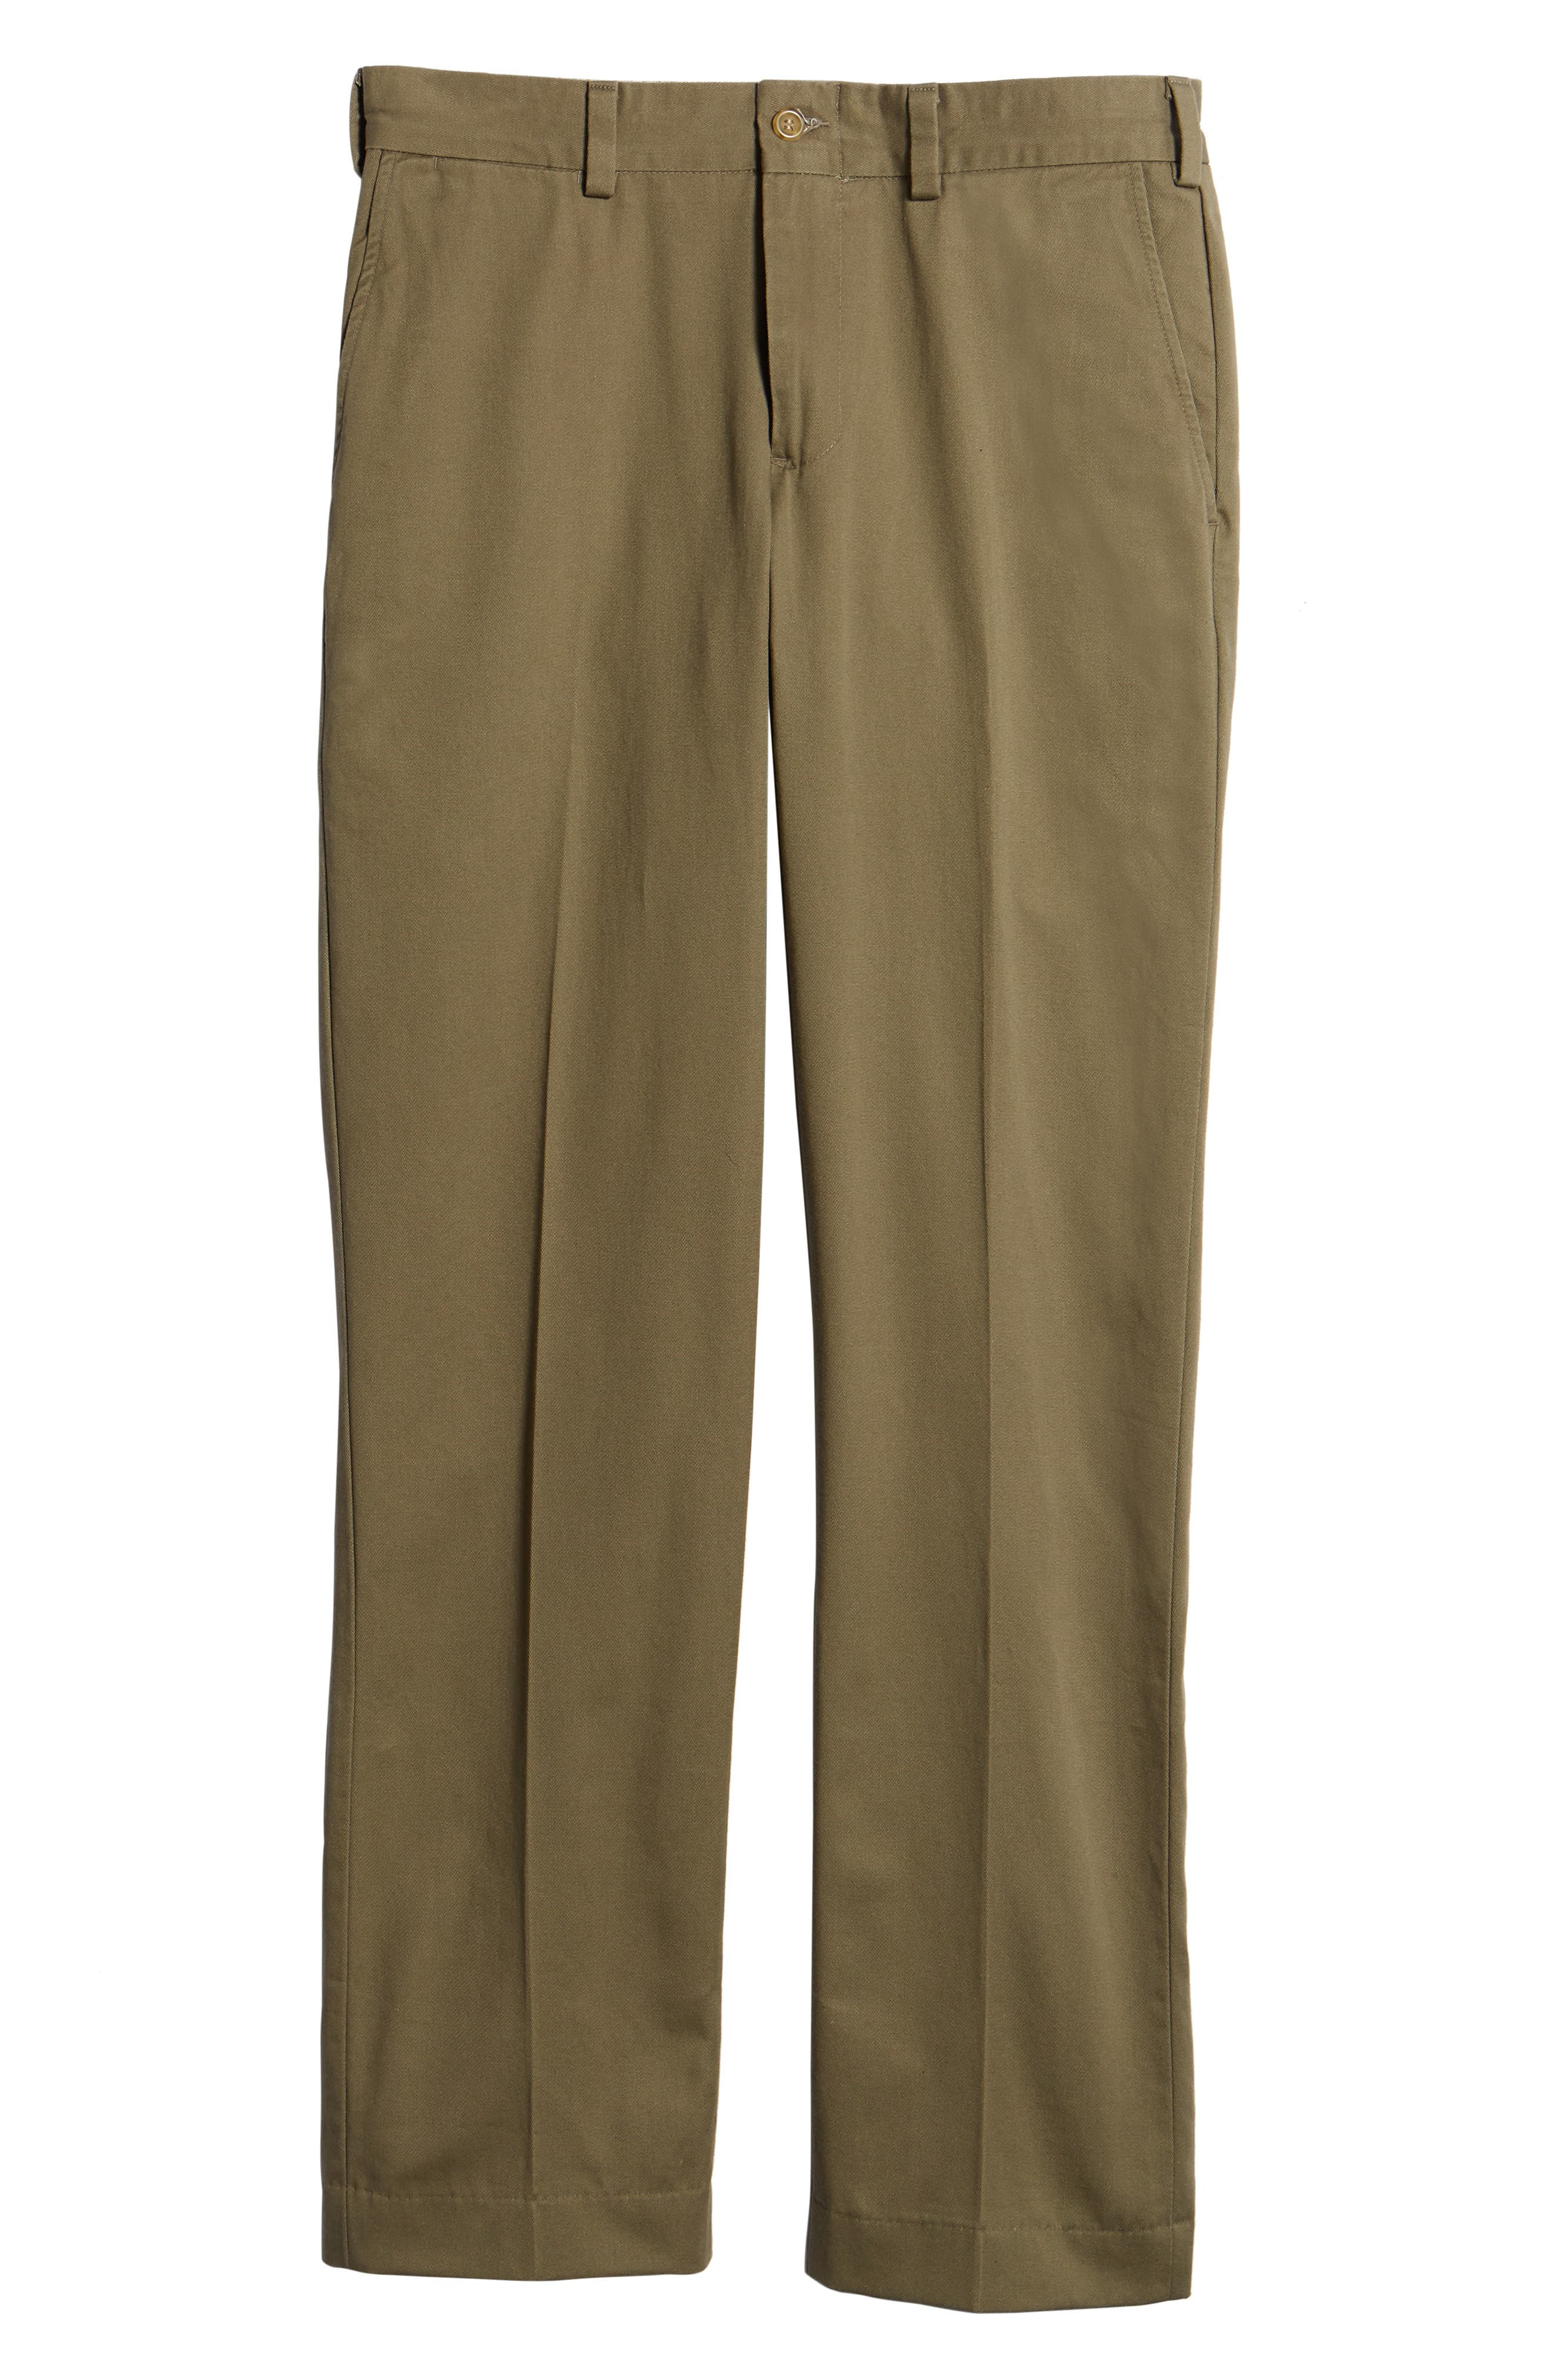 M3 Straight Fit Flat Front Vintage Twill Pants,                             Alternate thumbnail 6, color,                             Olive